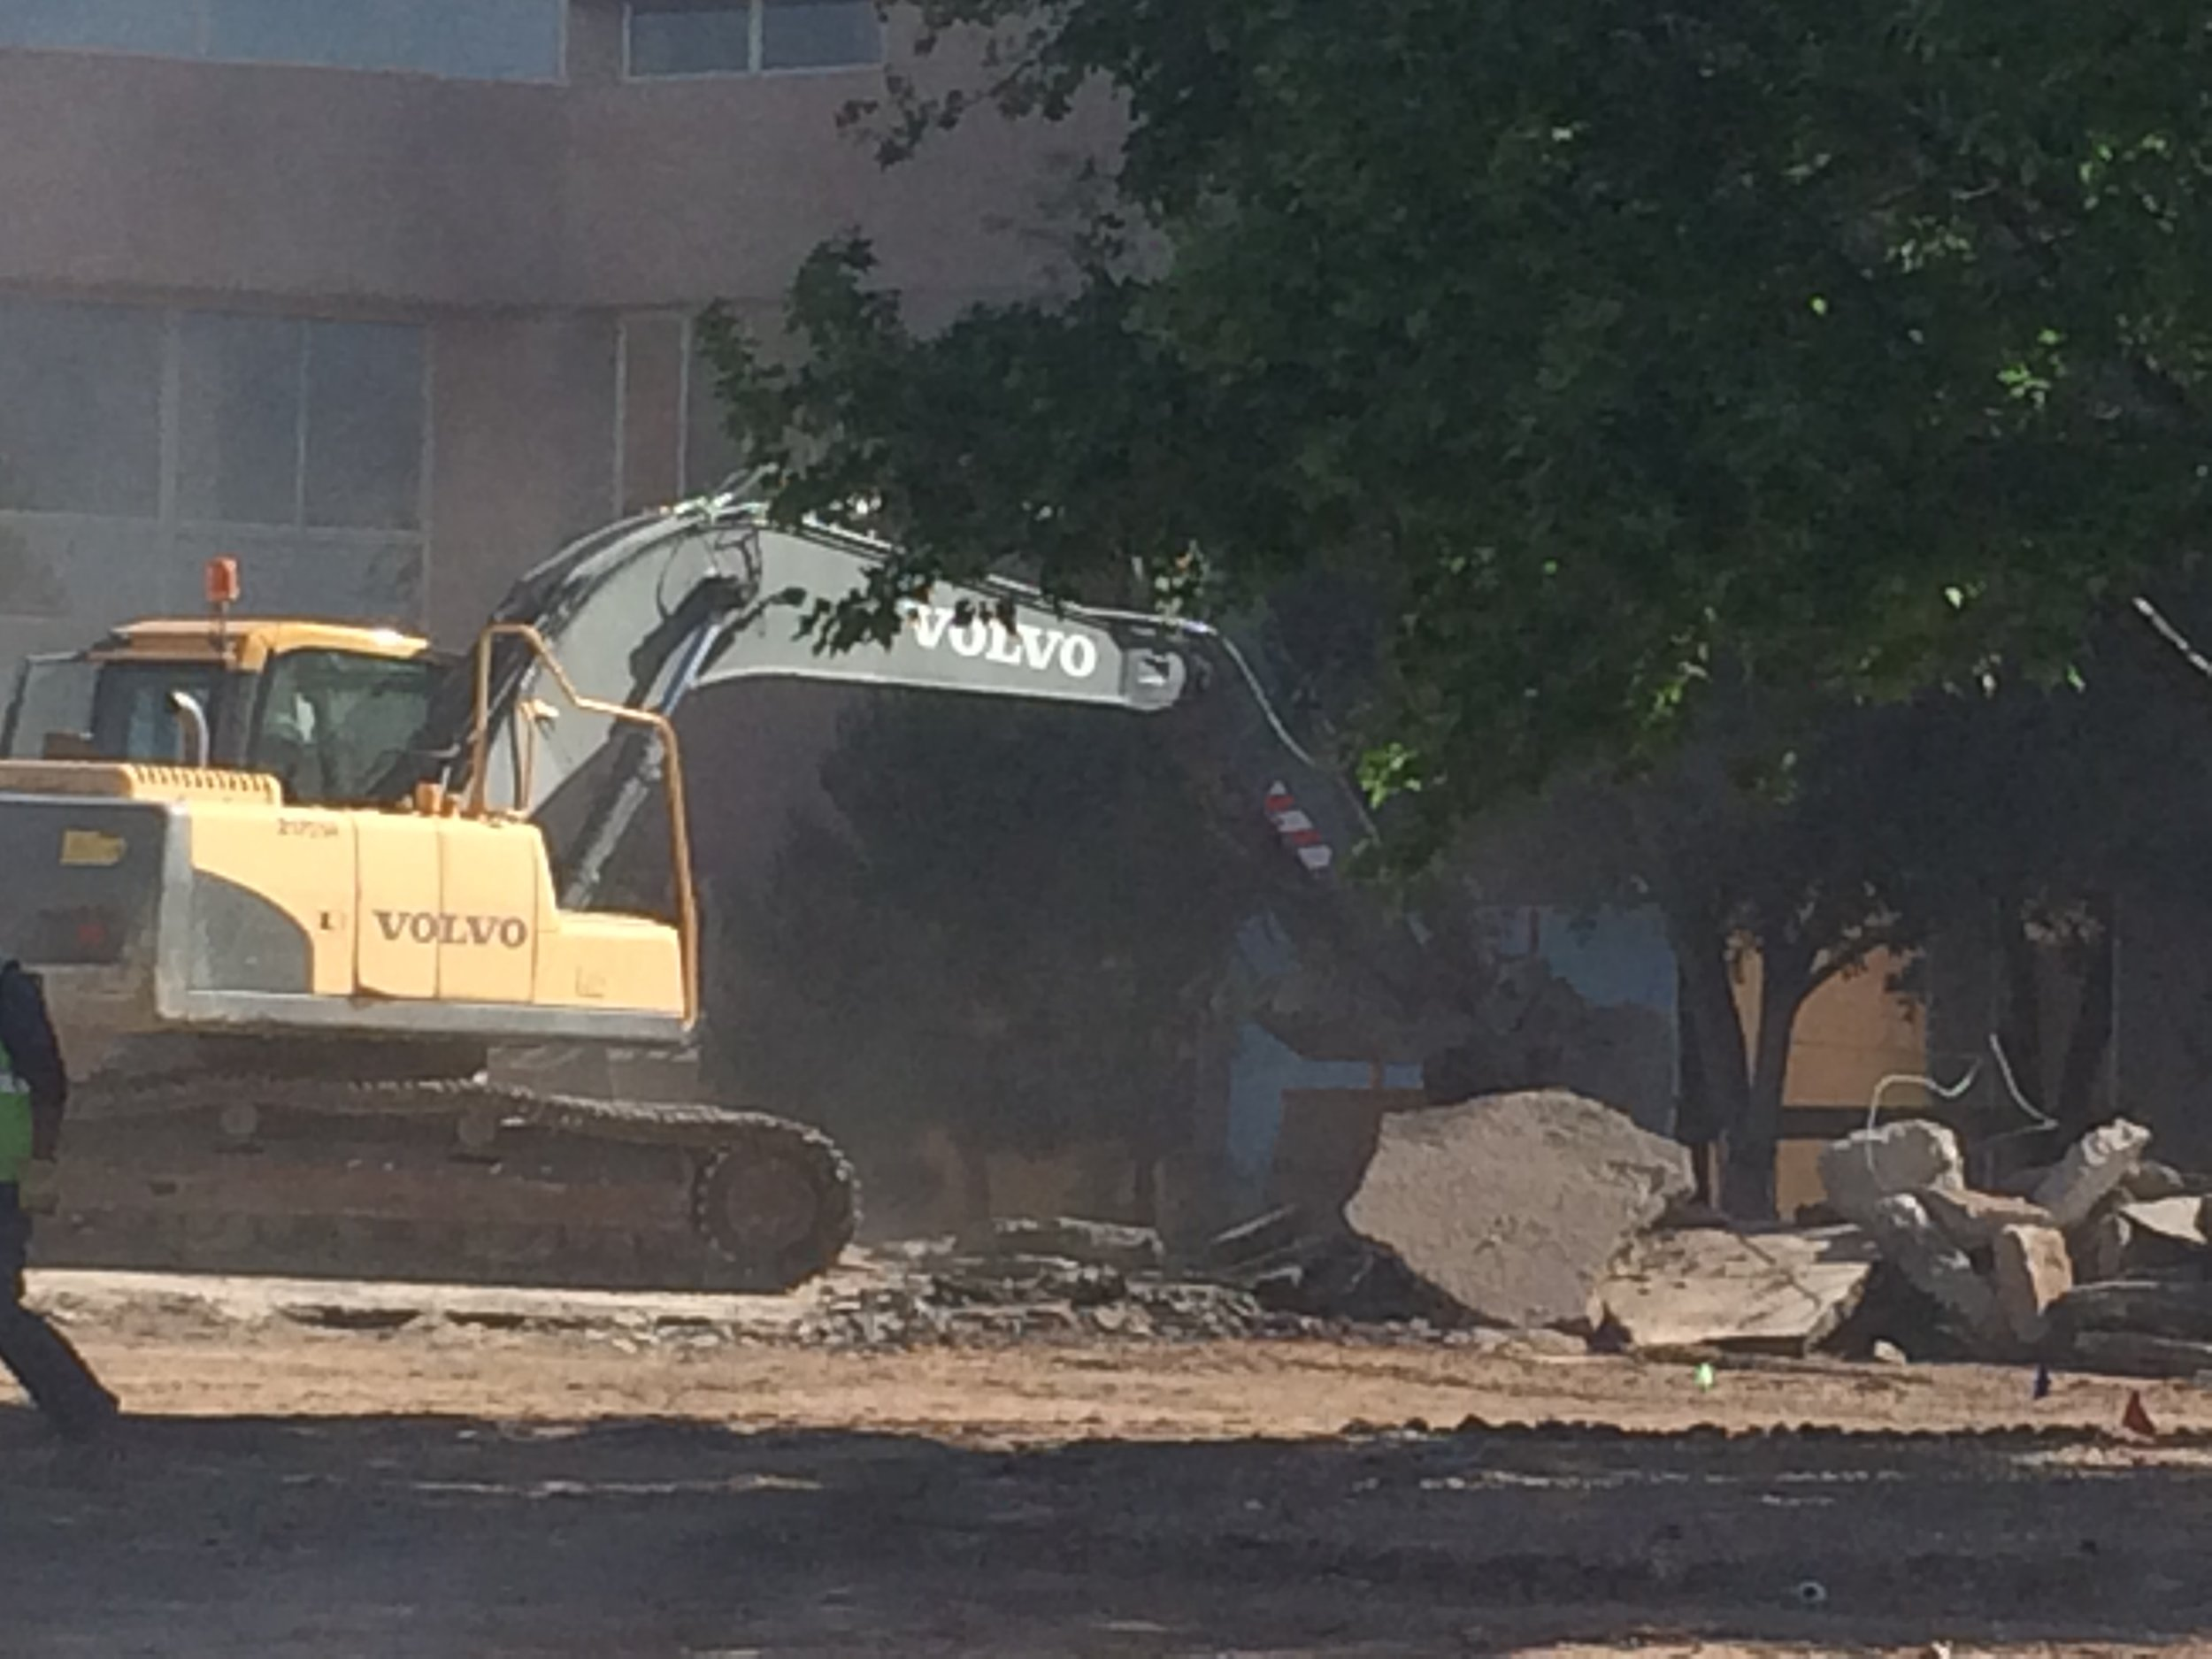 Demolition at St. Vincent's Hospital, Santa Fe, NM